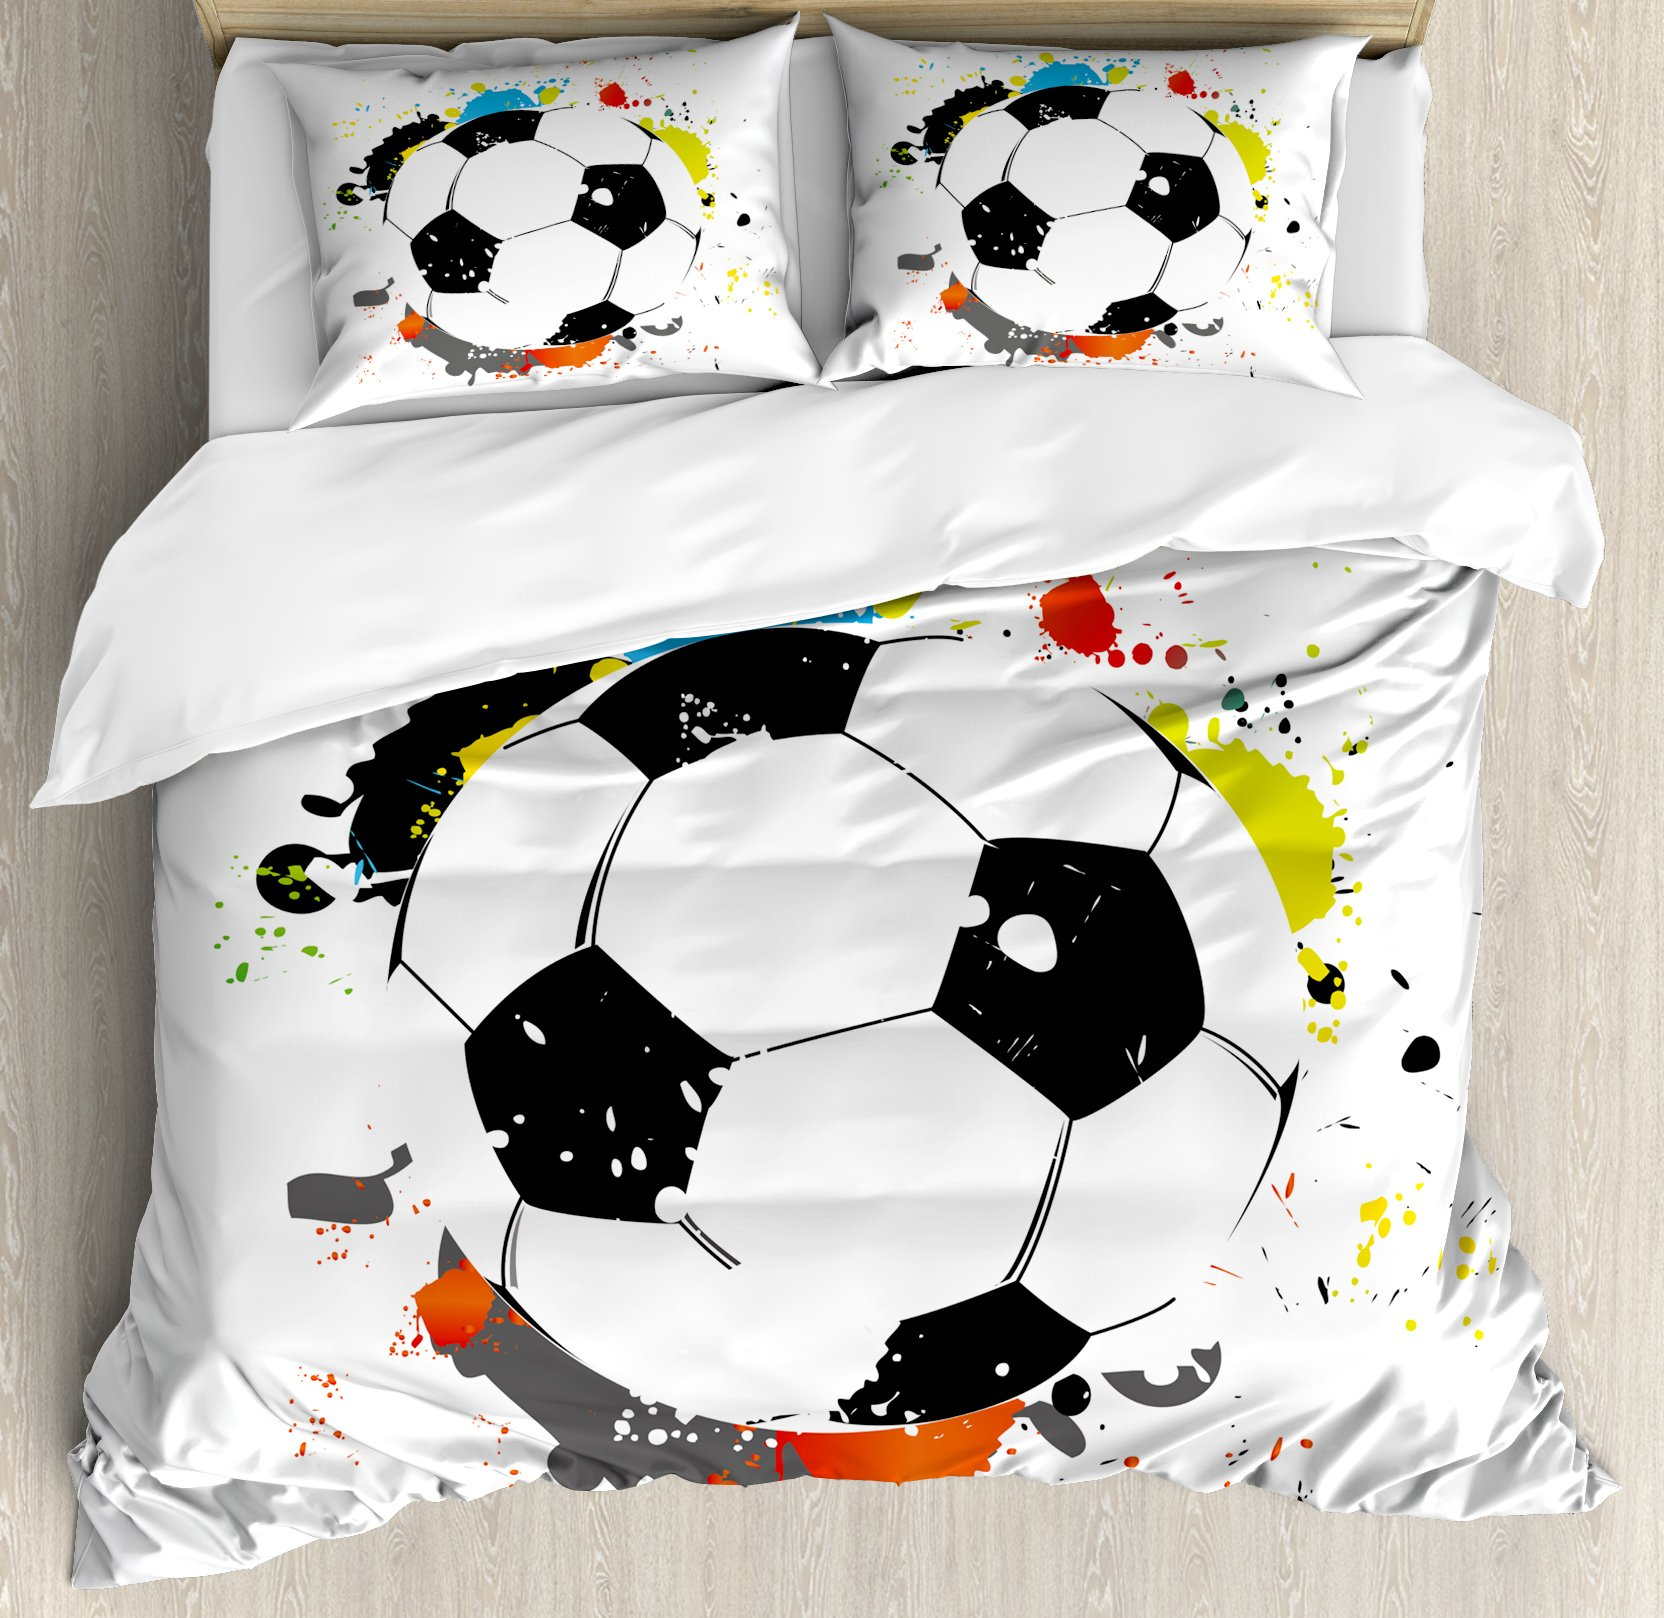 Boy's Room King Size Duvet Cover Set by Lunarable, Abstract Grunge Soccer Ball in Rainbow Colors Game Hobby Activity, Decorative 3 Piece Bedding Set with 2 Pillow Shams, Black White Multicolor